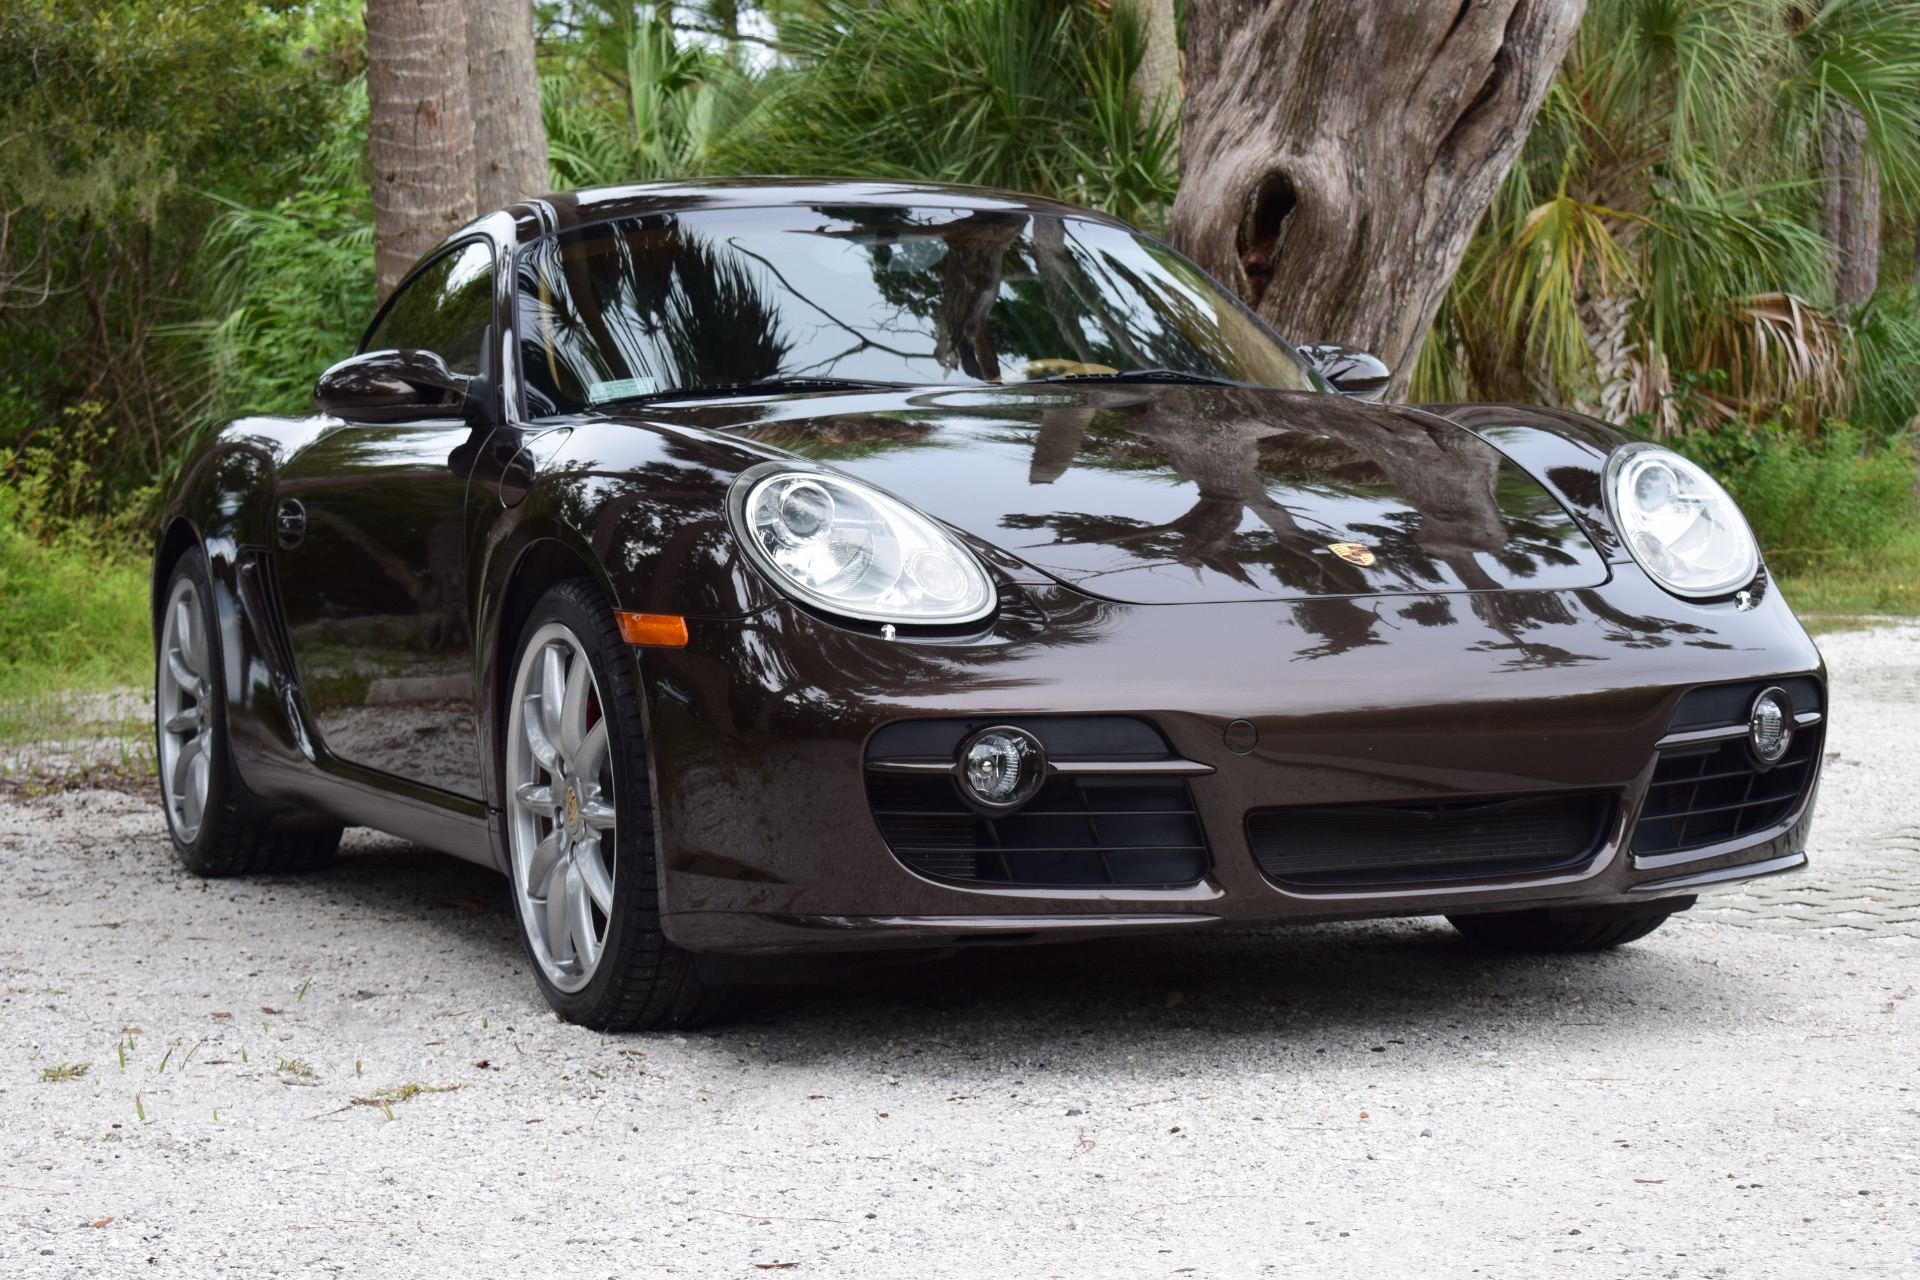 Used 2008 Porsche Cayman S Coupe 2D for sale Sold at Track and Field Motors in Safety Harbor FL 34695 1